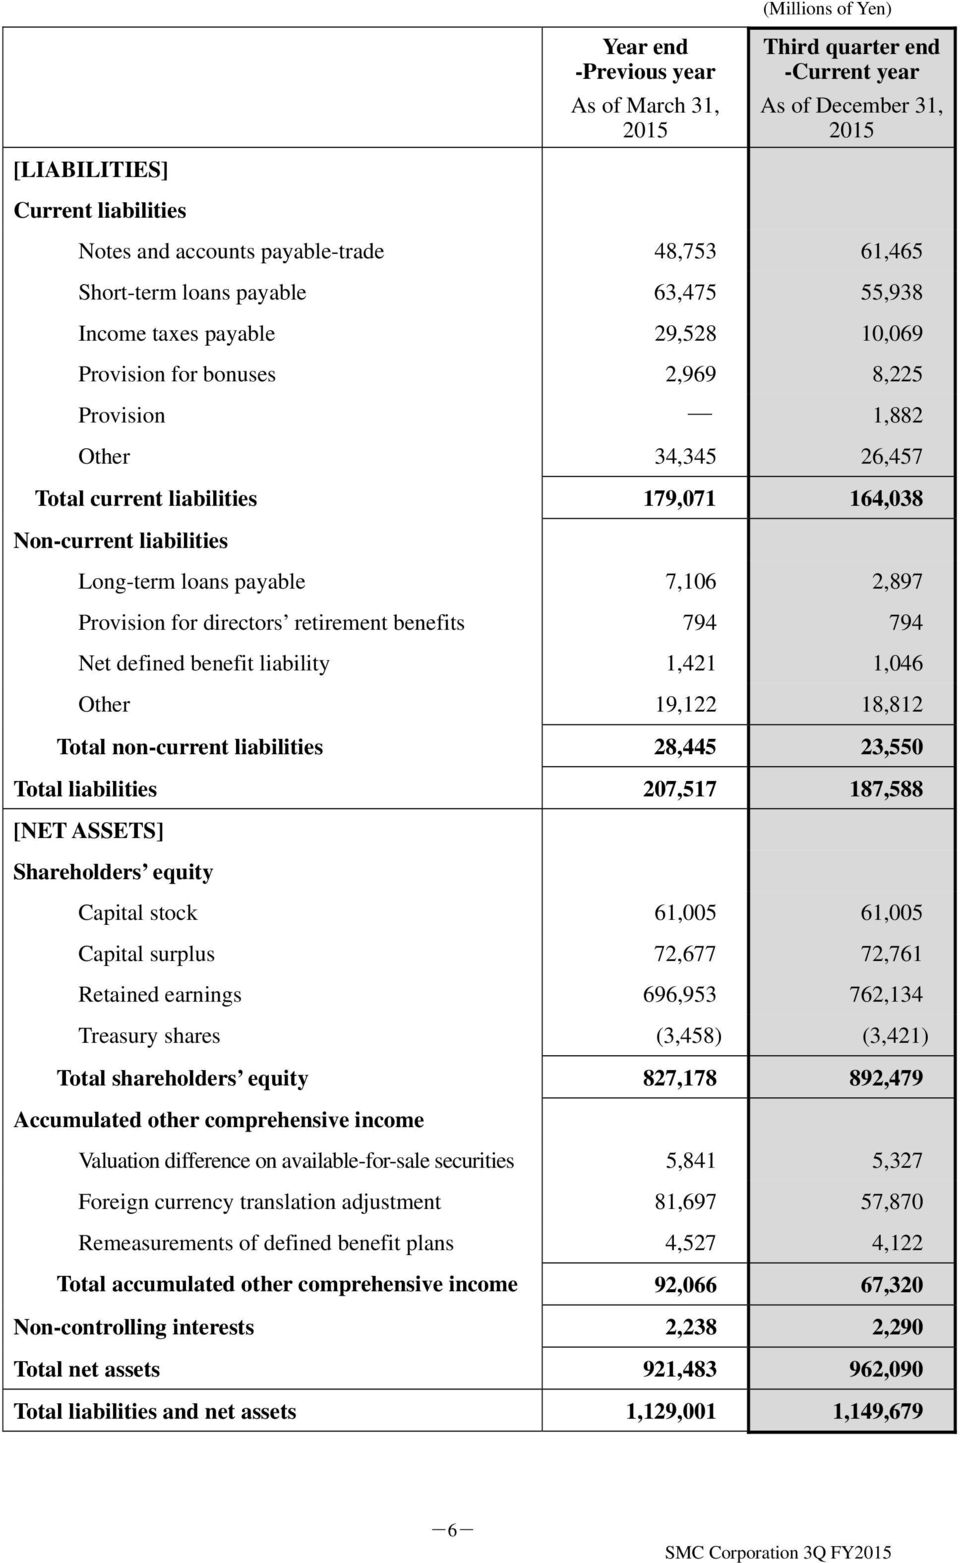 liabilities Long-term loans payable 7,106 2,897 Provision for directors retirement benefits 794 794 Net defined benefit liability 1,421 1,046 Other 19,122 18,812 Total non-current liabilities 28,445